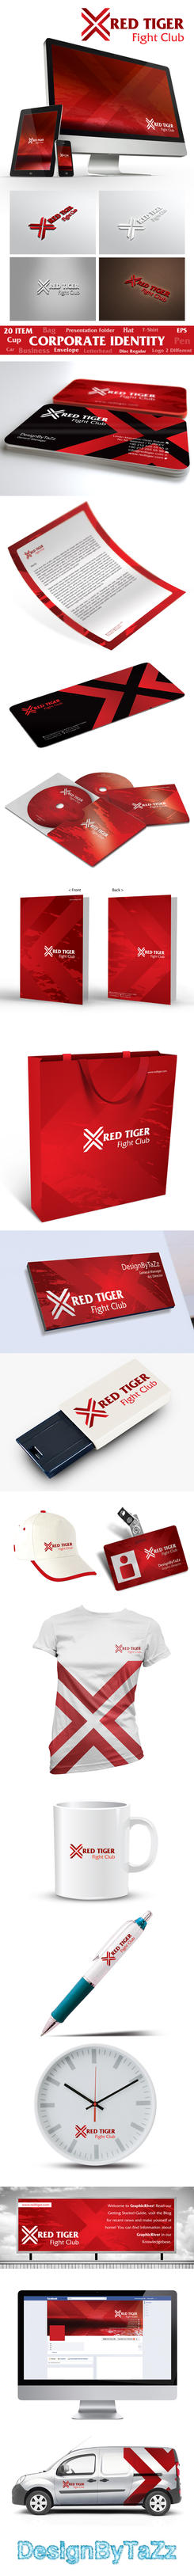 Red Tiger Corporate Identity by korkutaykut